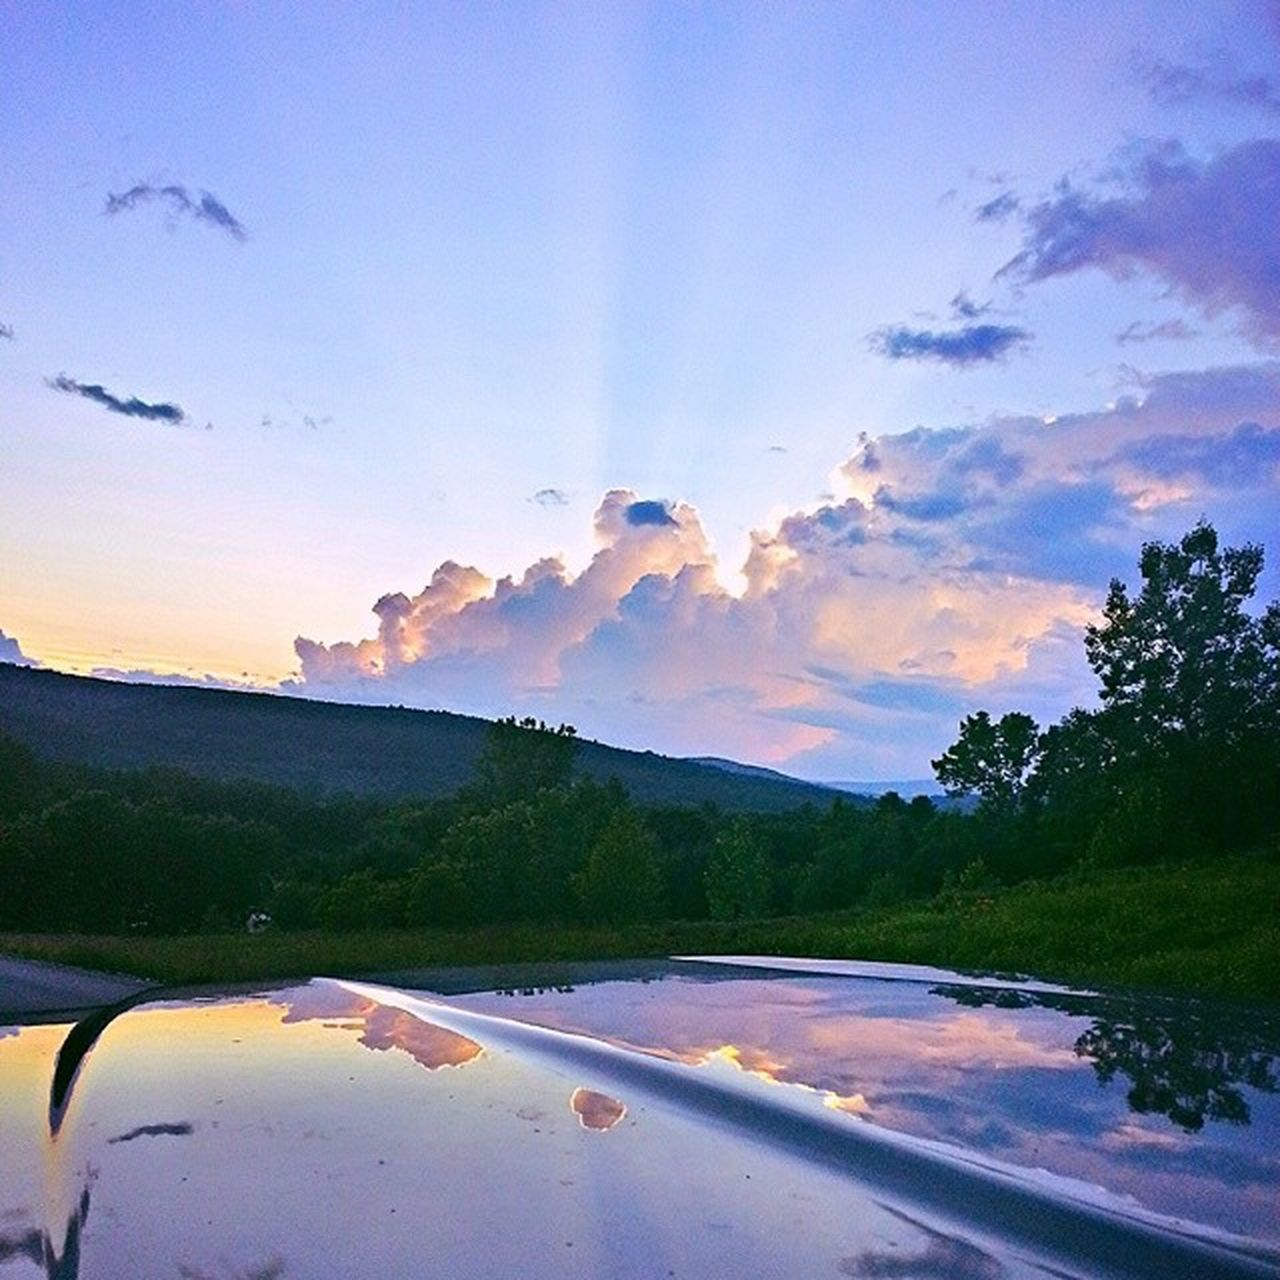 One of my favorite shots. Love the way the sky reflects on the tonneau cover. Taken near my house this summer. Seriously missing those warm, colorful summer nights. TBT  Charlestown NH 603 Newhampshire Igersnh Officialnhgram SummerNights Reflection Colorfulsky